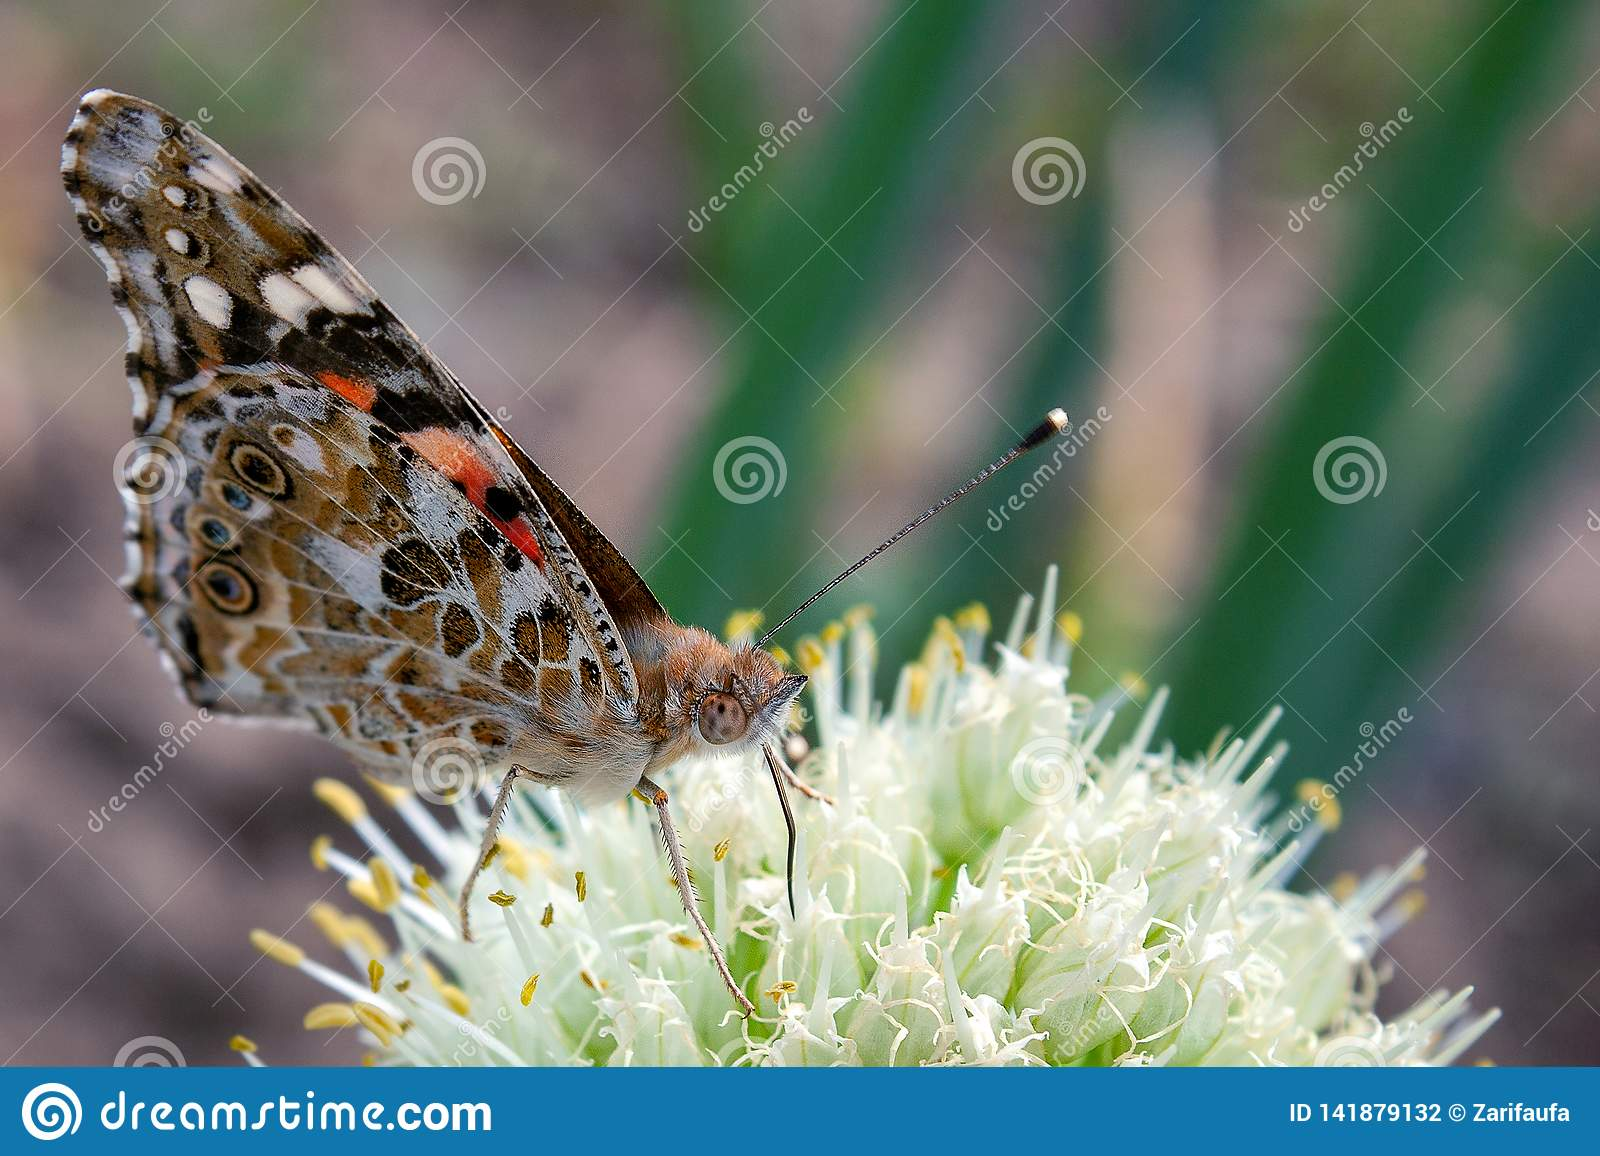 Closeup brown butterfly on white onion flower